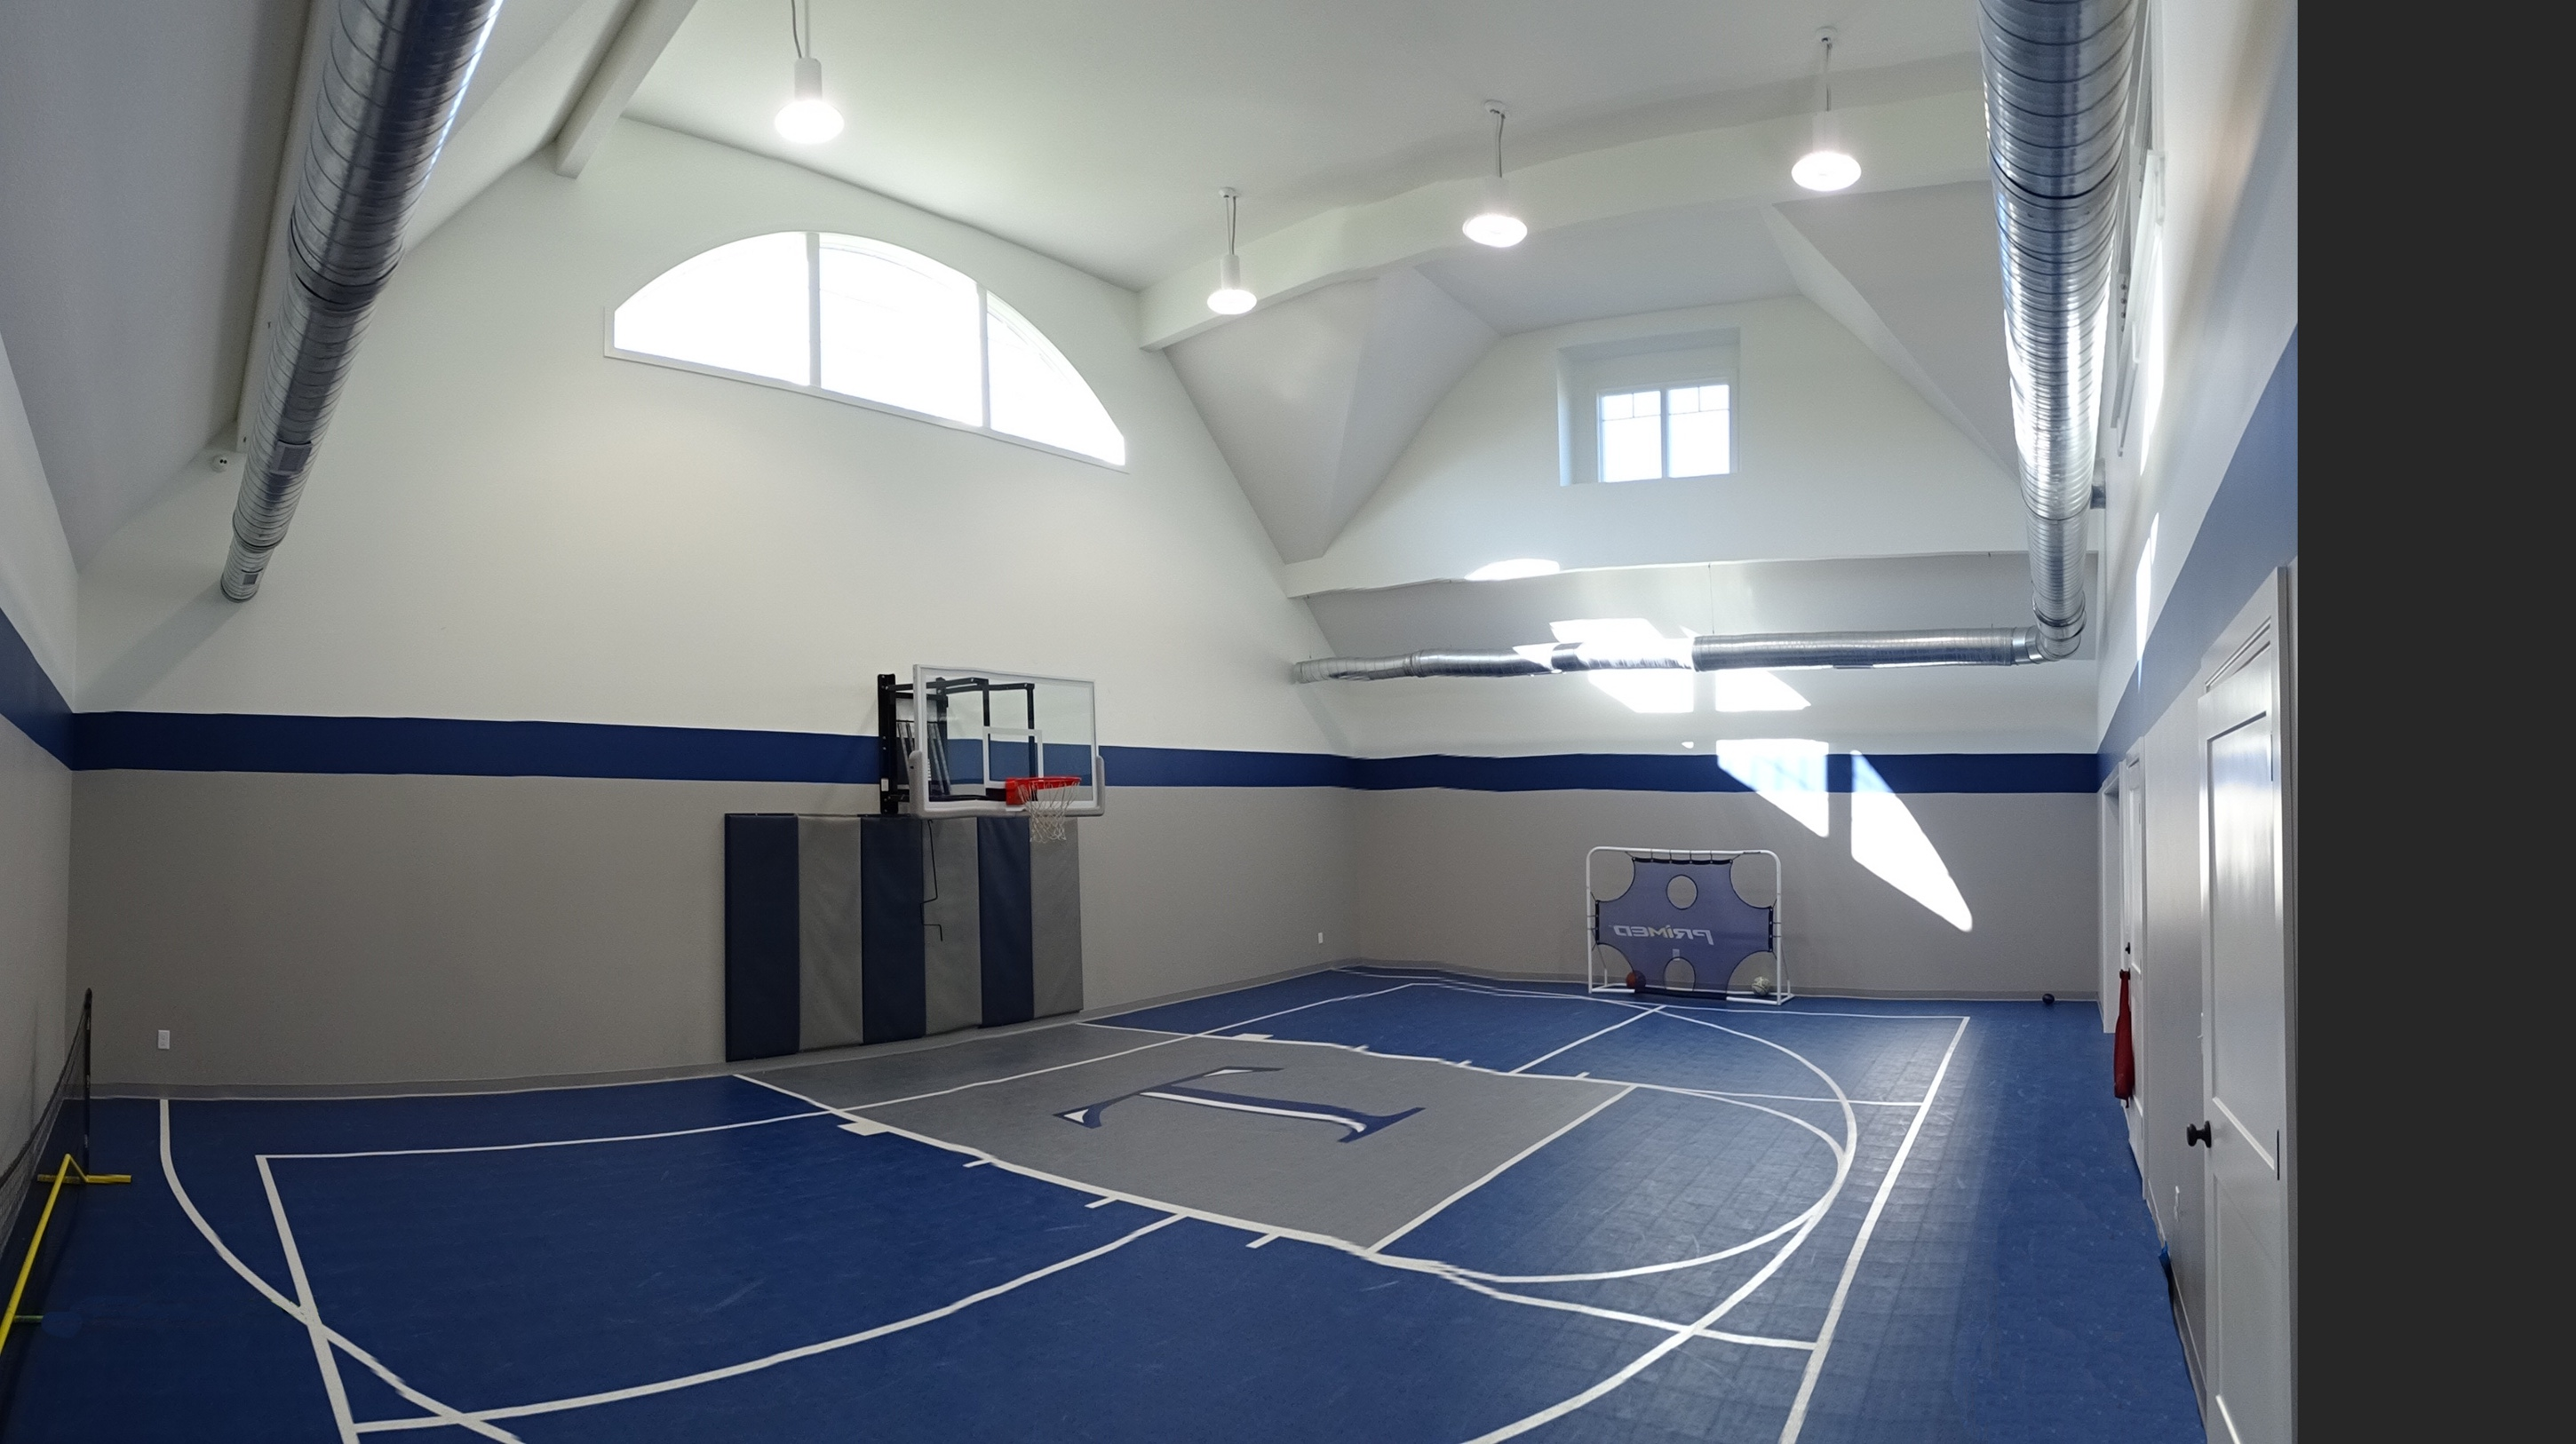 Interior view of basketball court